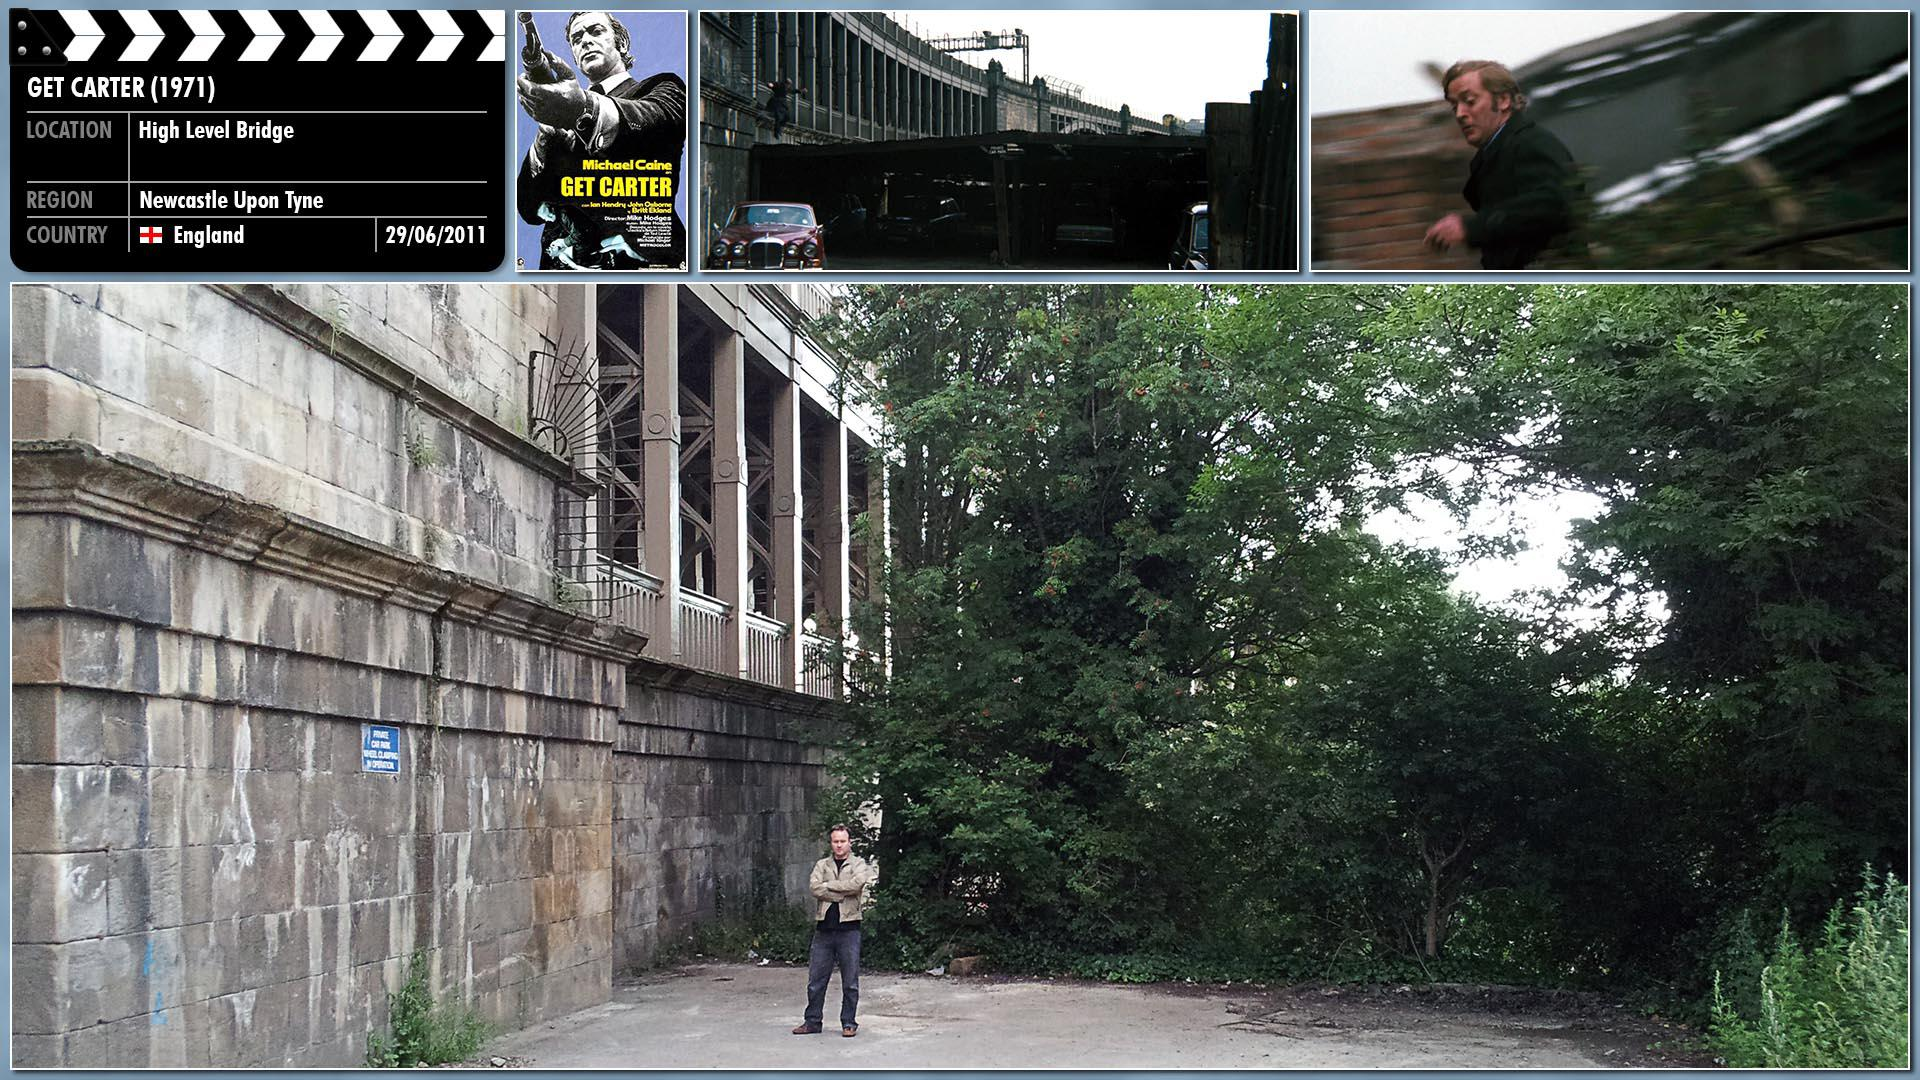 Filming location photo for Get Carter (1971) 6 of 17